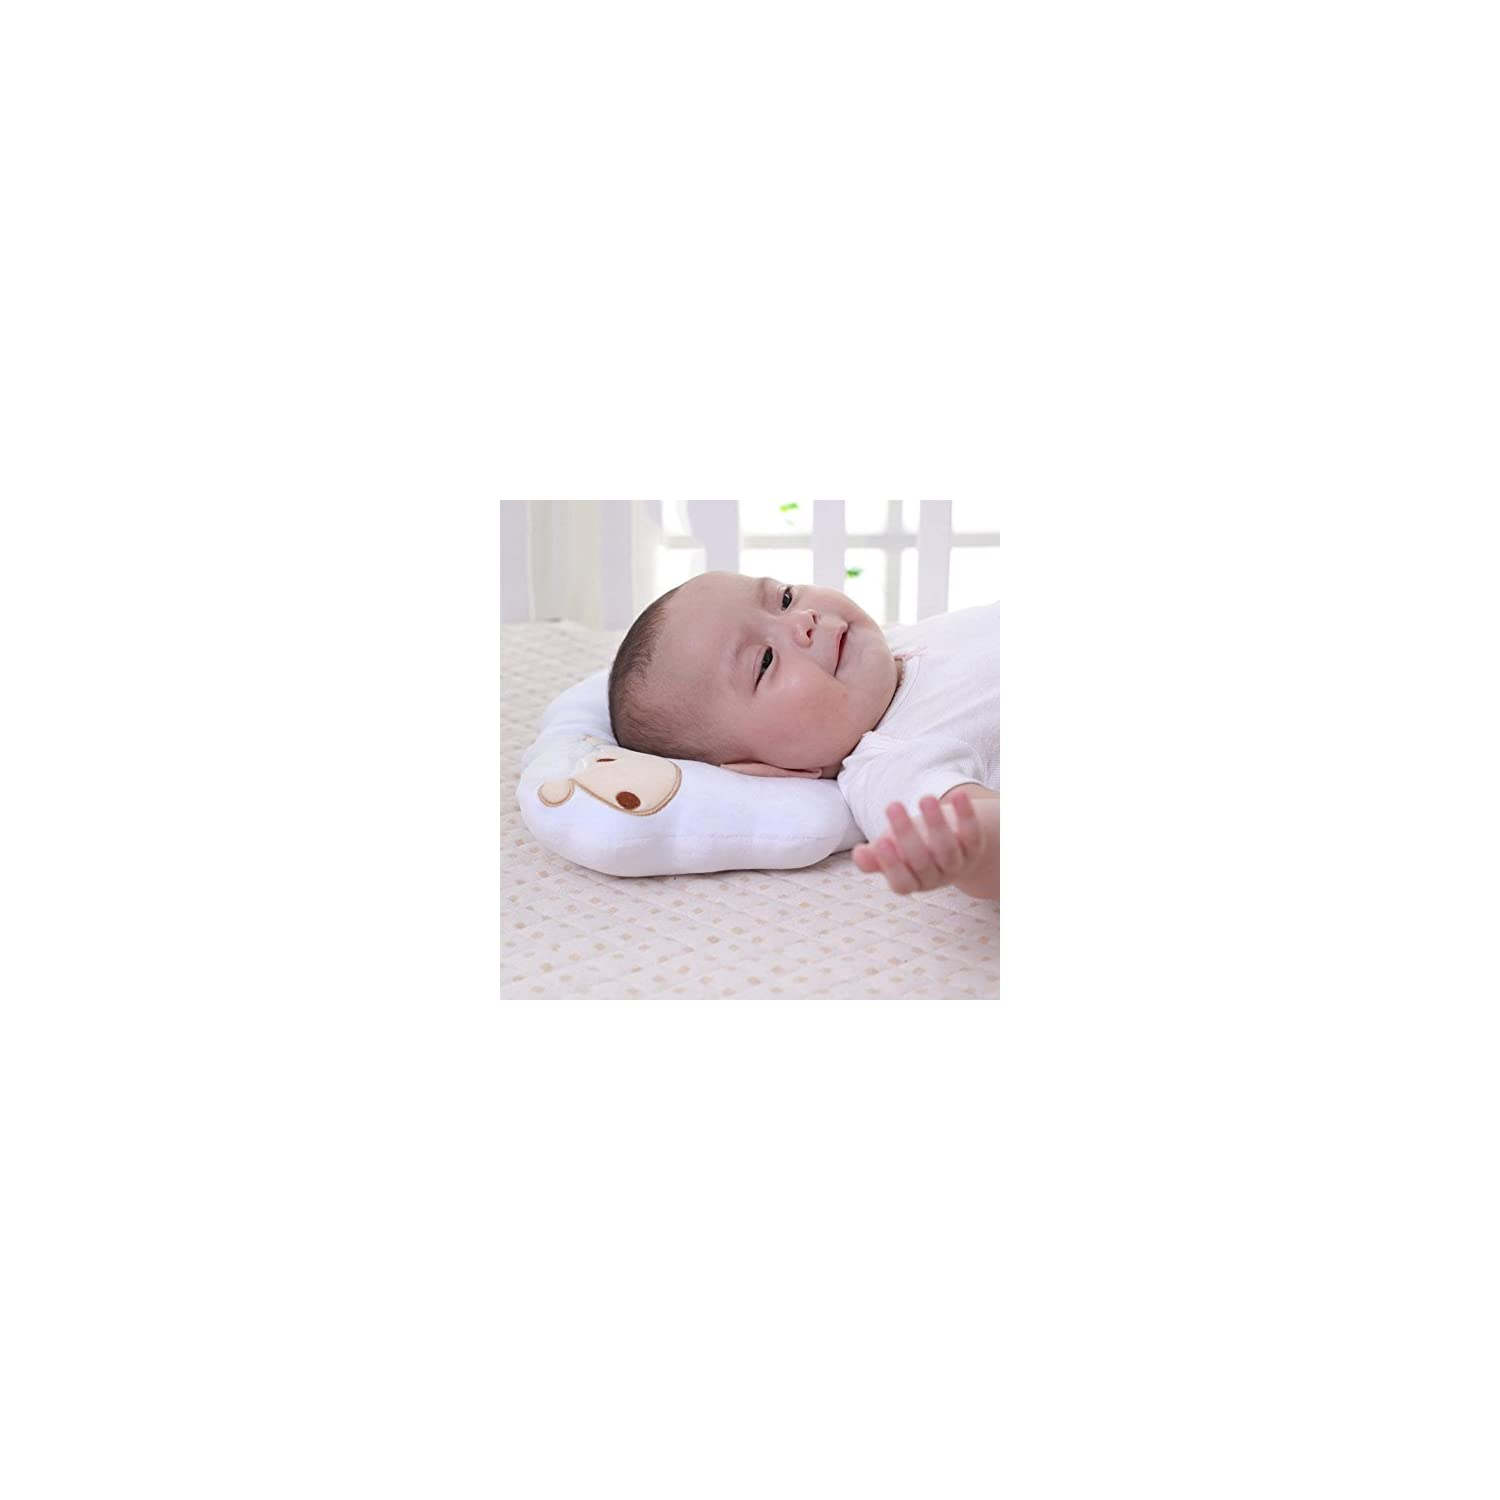 StoHua Baby Pillow for Flat Head Syndrome Prevention, Baby Sleeping Pillow Newborn Baby Organic Cotton Head Shaping Pillow for Infants Soft & Breathable